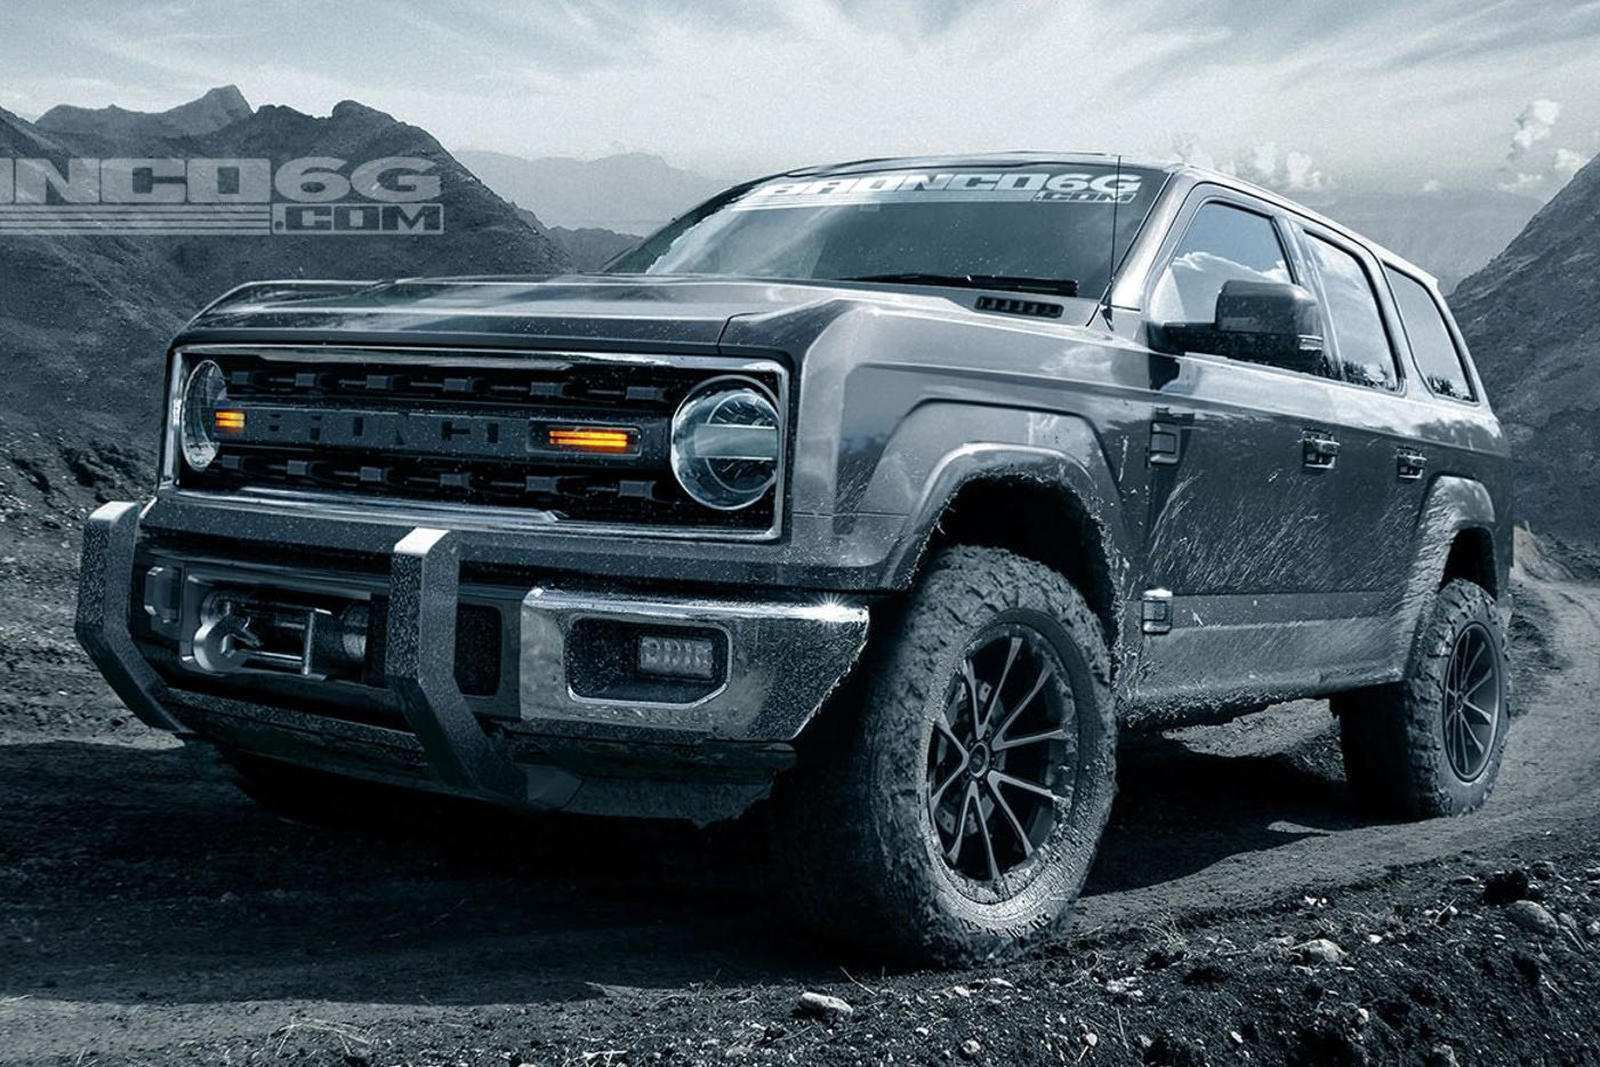 19 Gallery of 2020 Ford Bronco Design First Drive for 2020 Ford Bronco Design